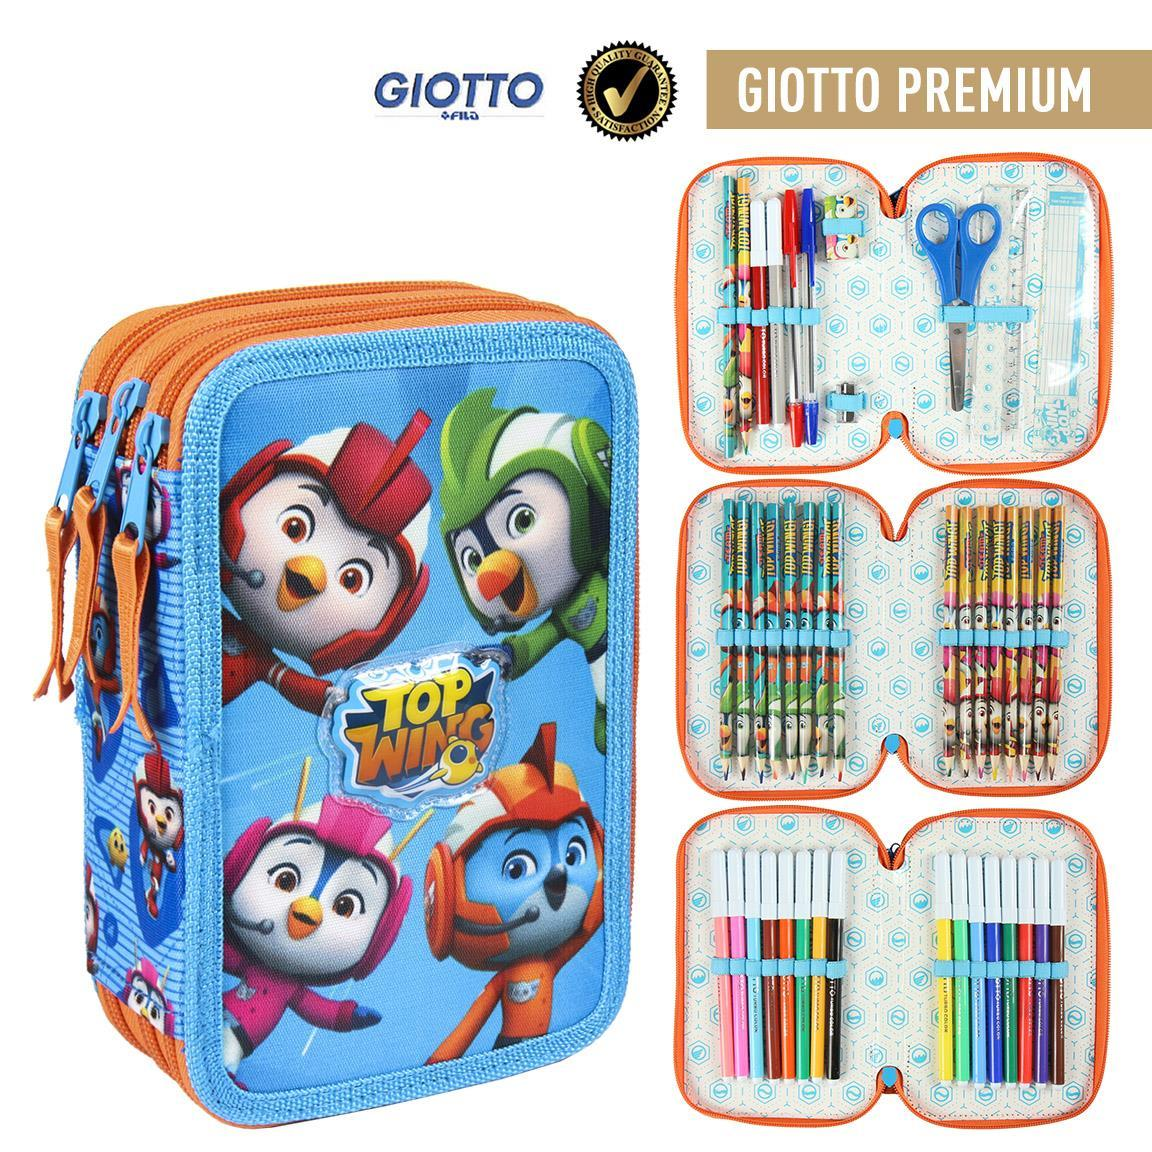 Plumier Triple Giotto Premium Top Wing Officially Licensed Children Gift Original